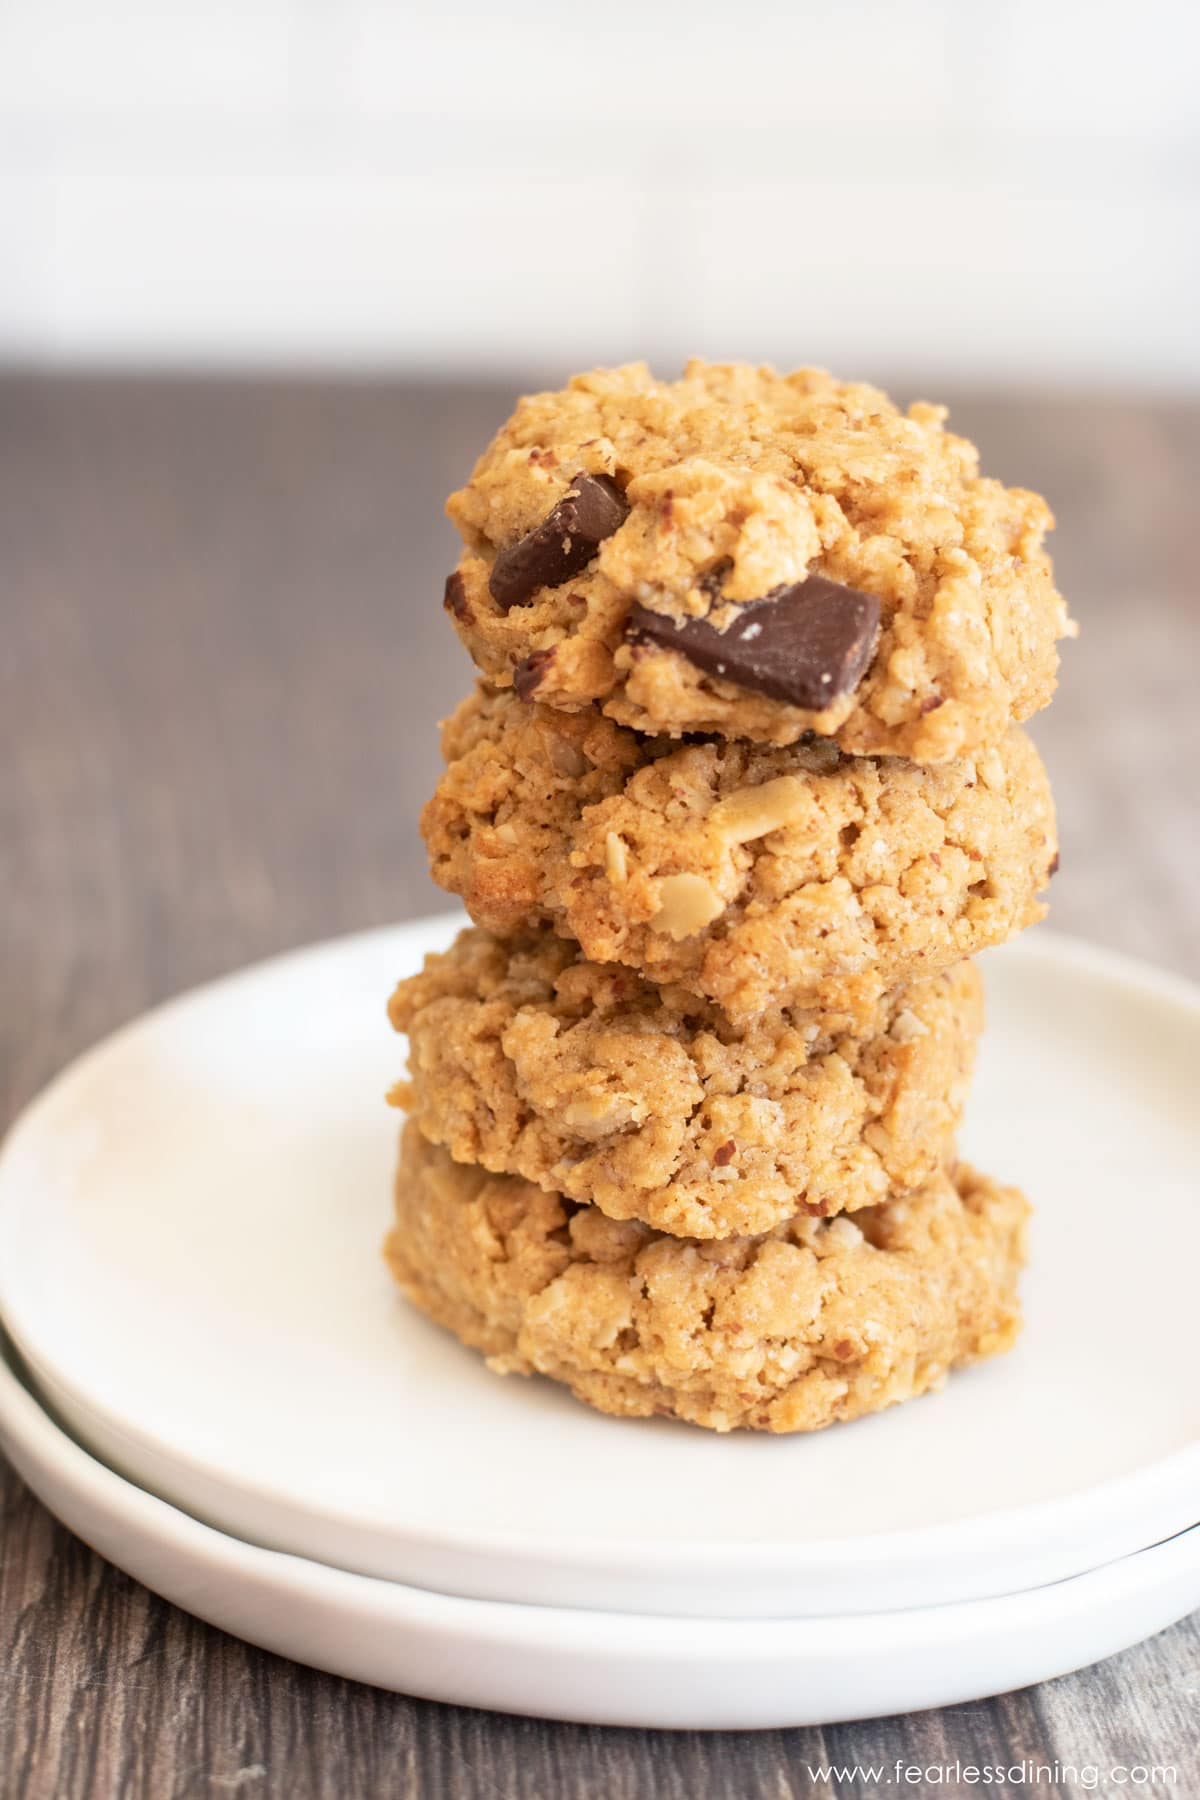 a stack of four gluten free peanut butter oat cookies on a white plate